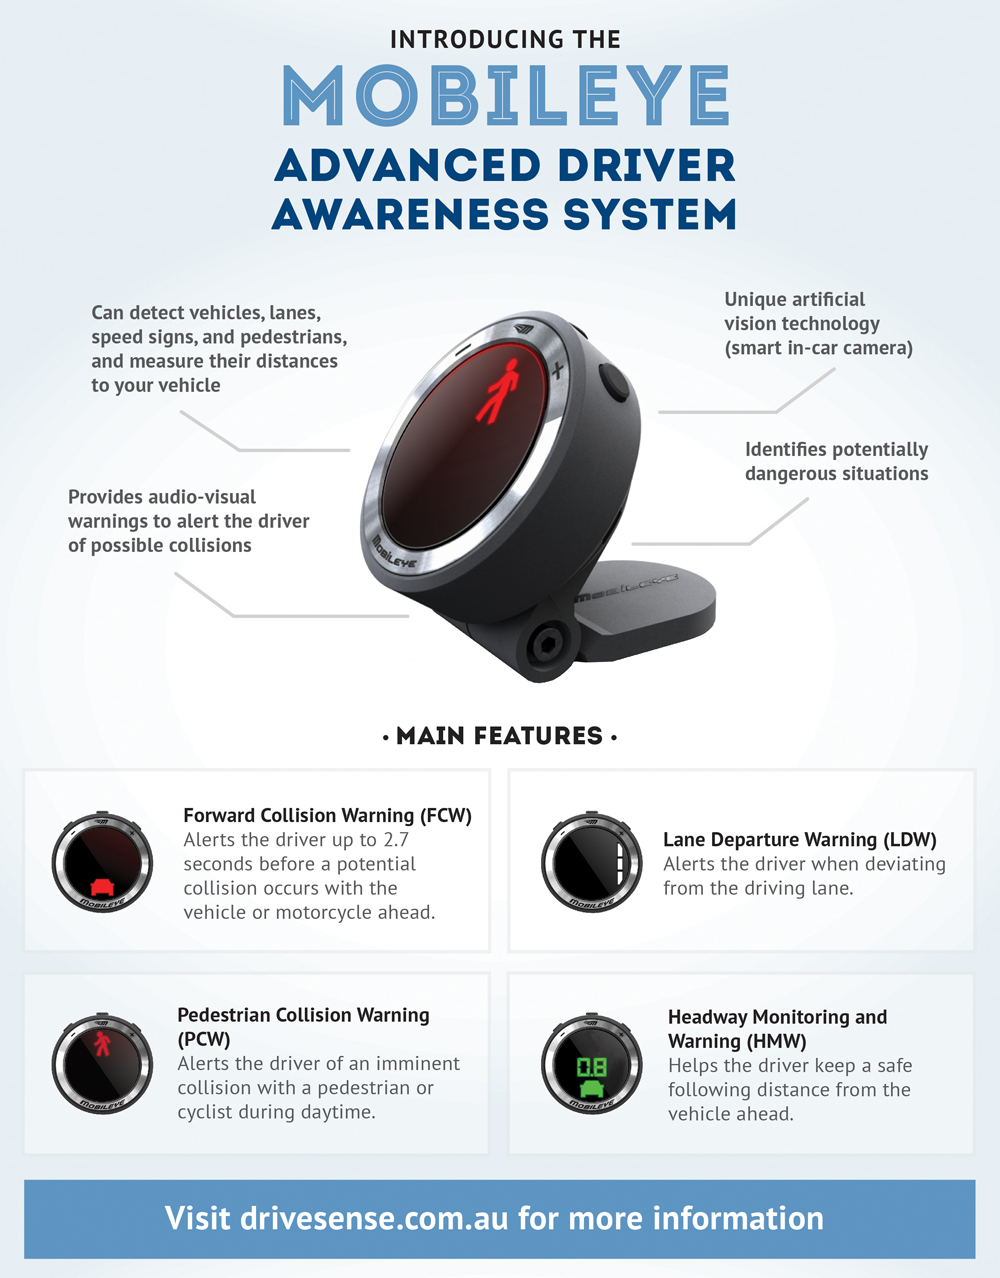 Mobileye - Advanced Driver Awareness System